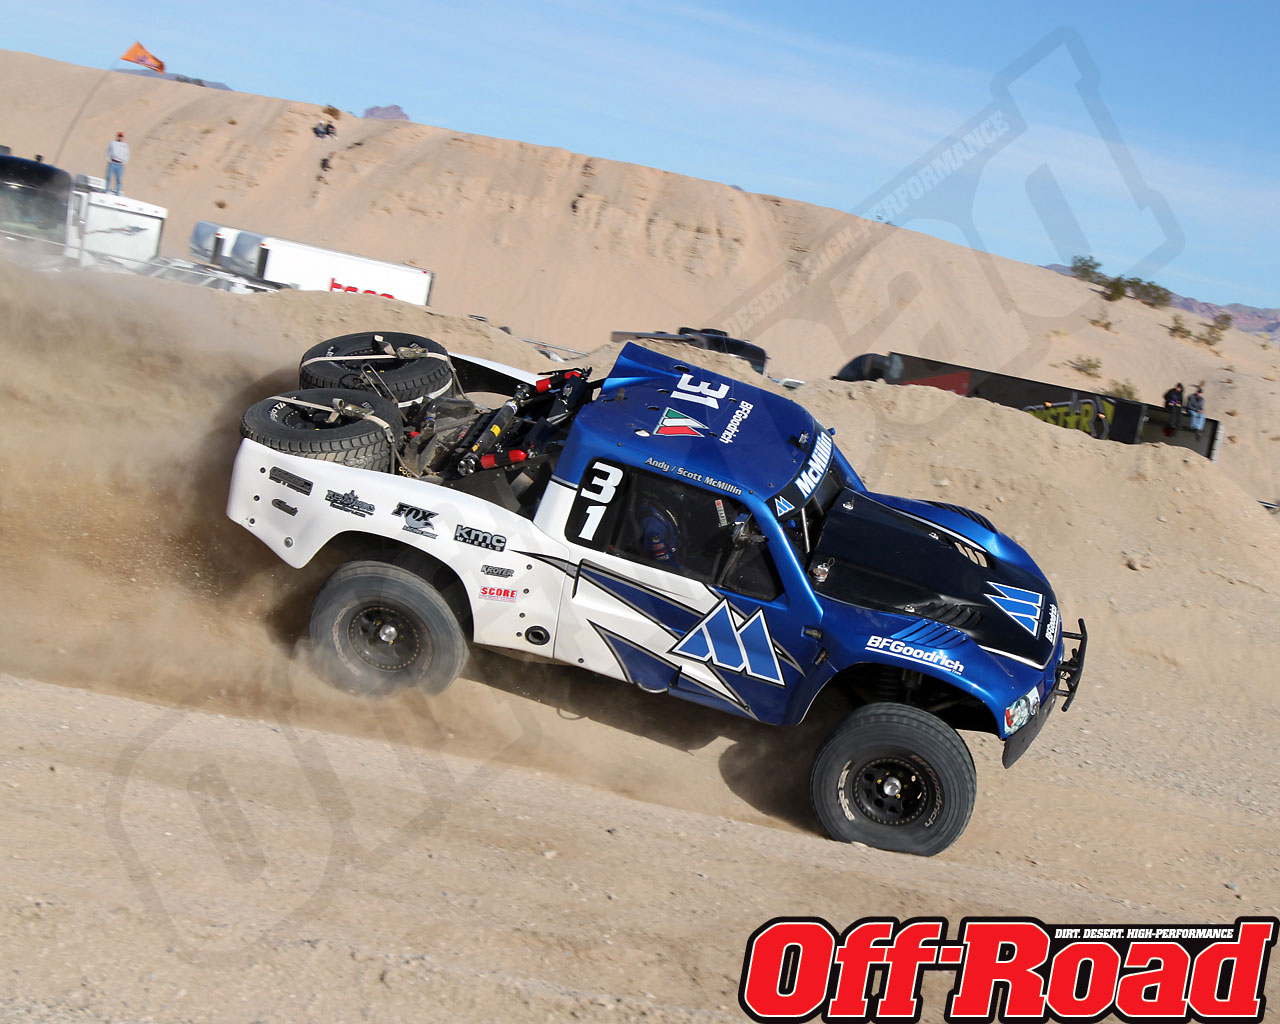 1002or 0606 o+2010 score laughlin desert challenge+trophy truck